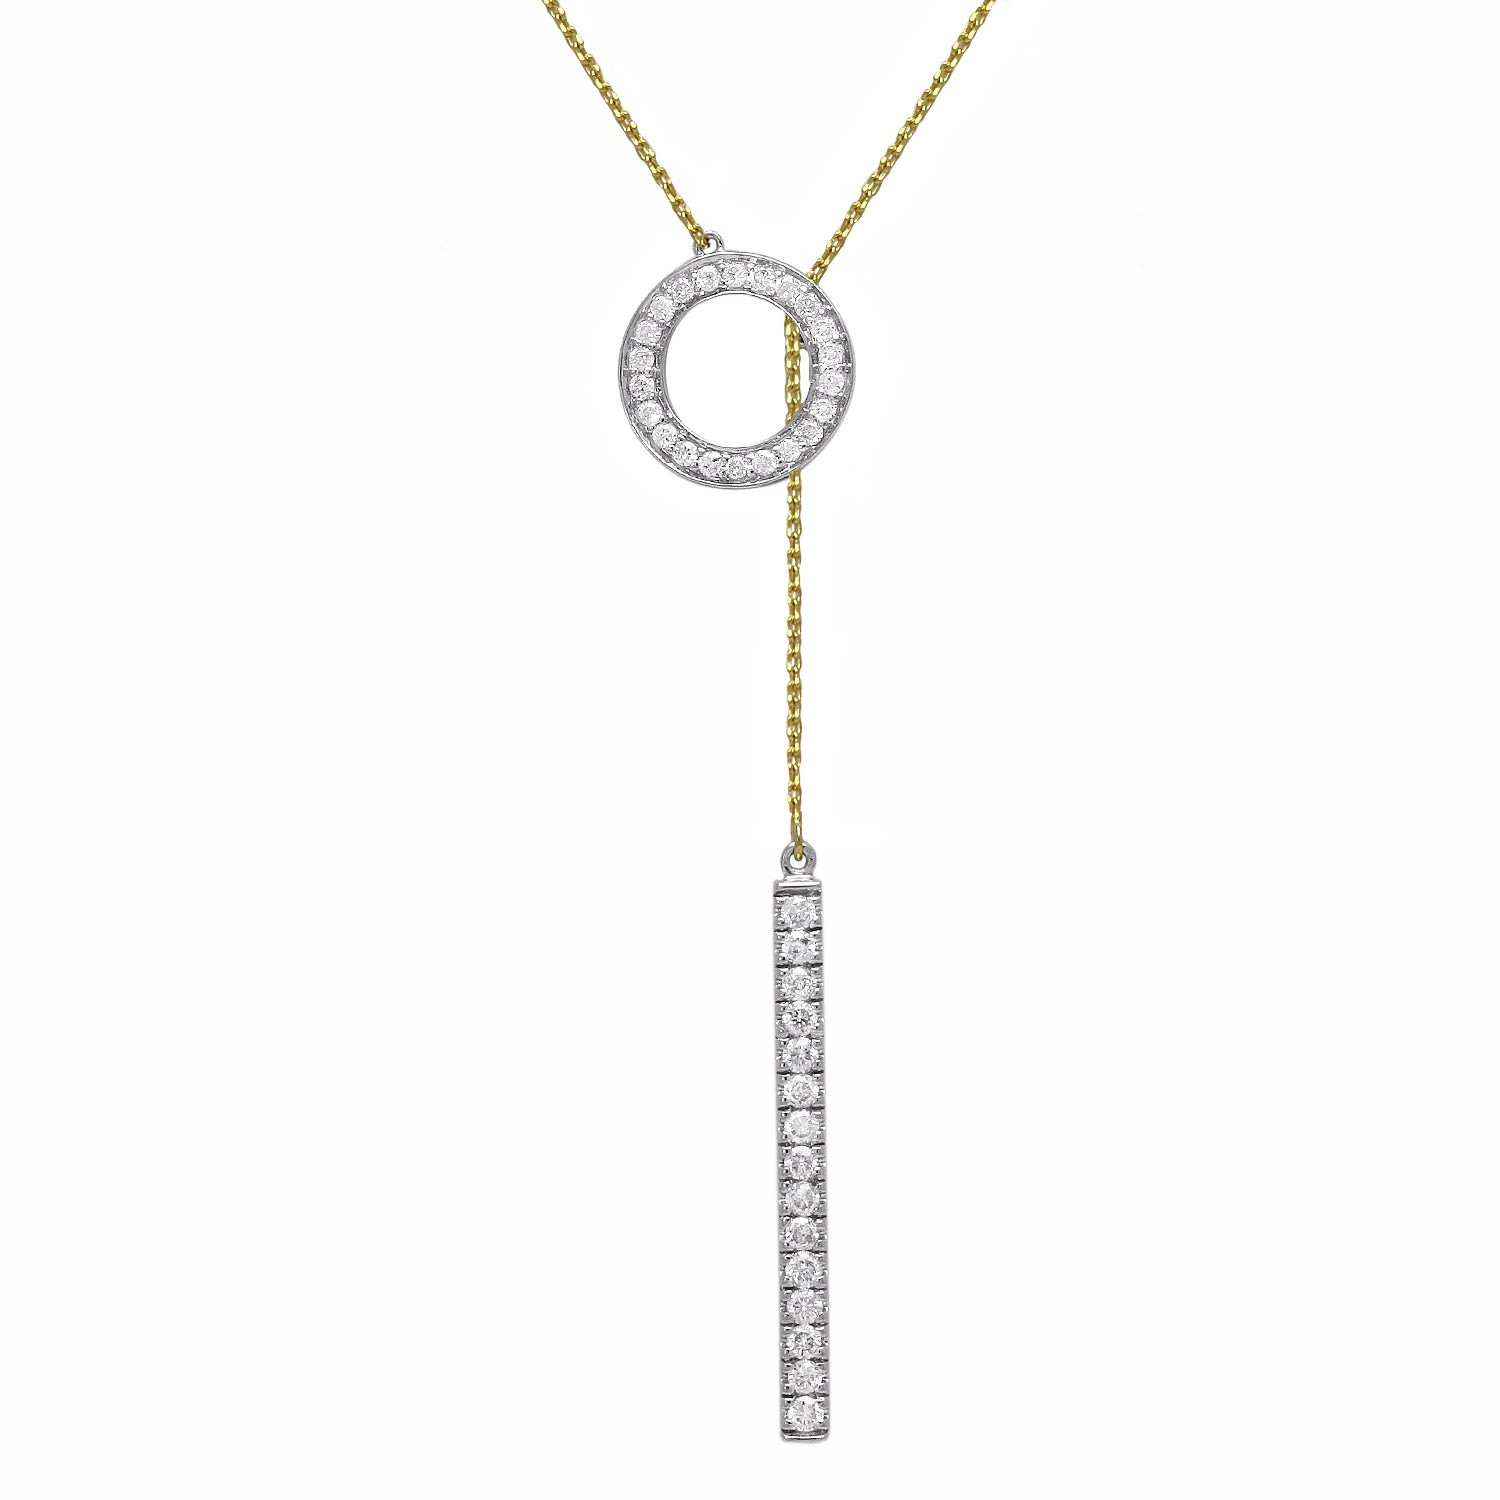 d4a0c009ccb742 Shop 10k Gold 1/3ct TDW 'Together Forever' Diamond Lariat Necklace ...